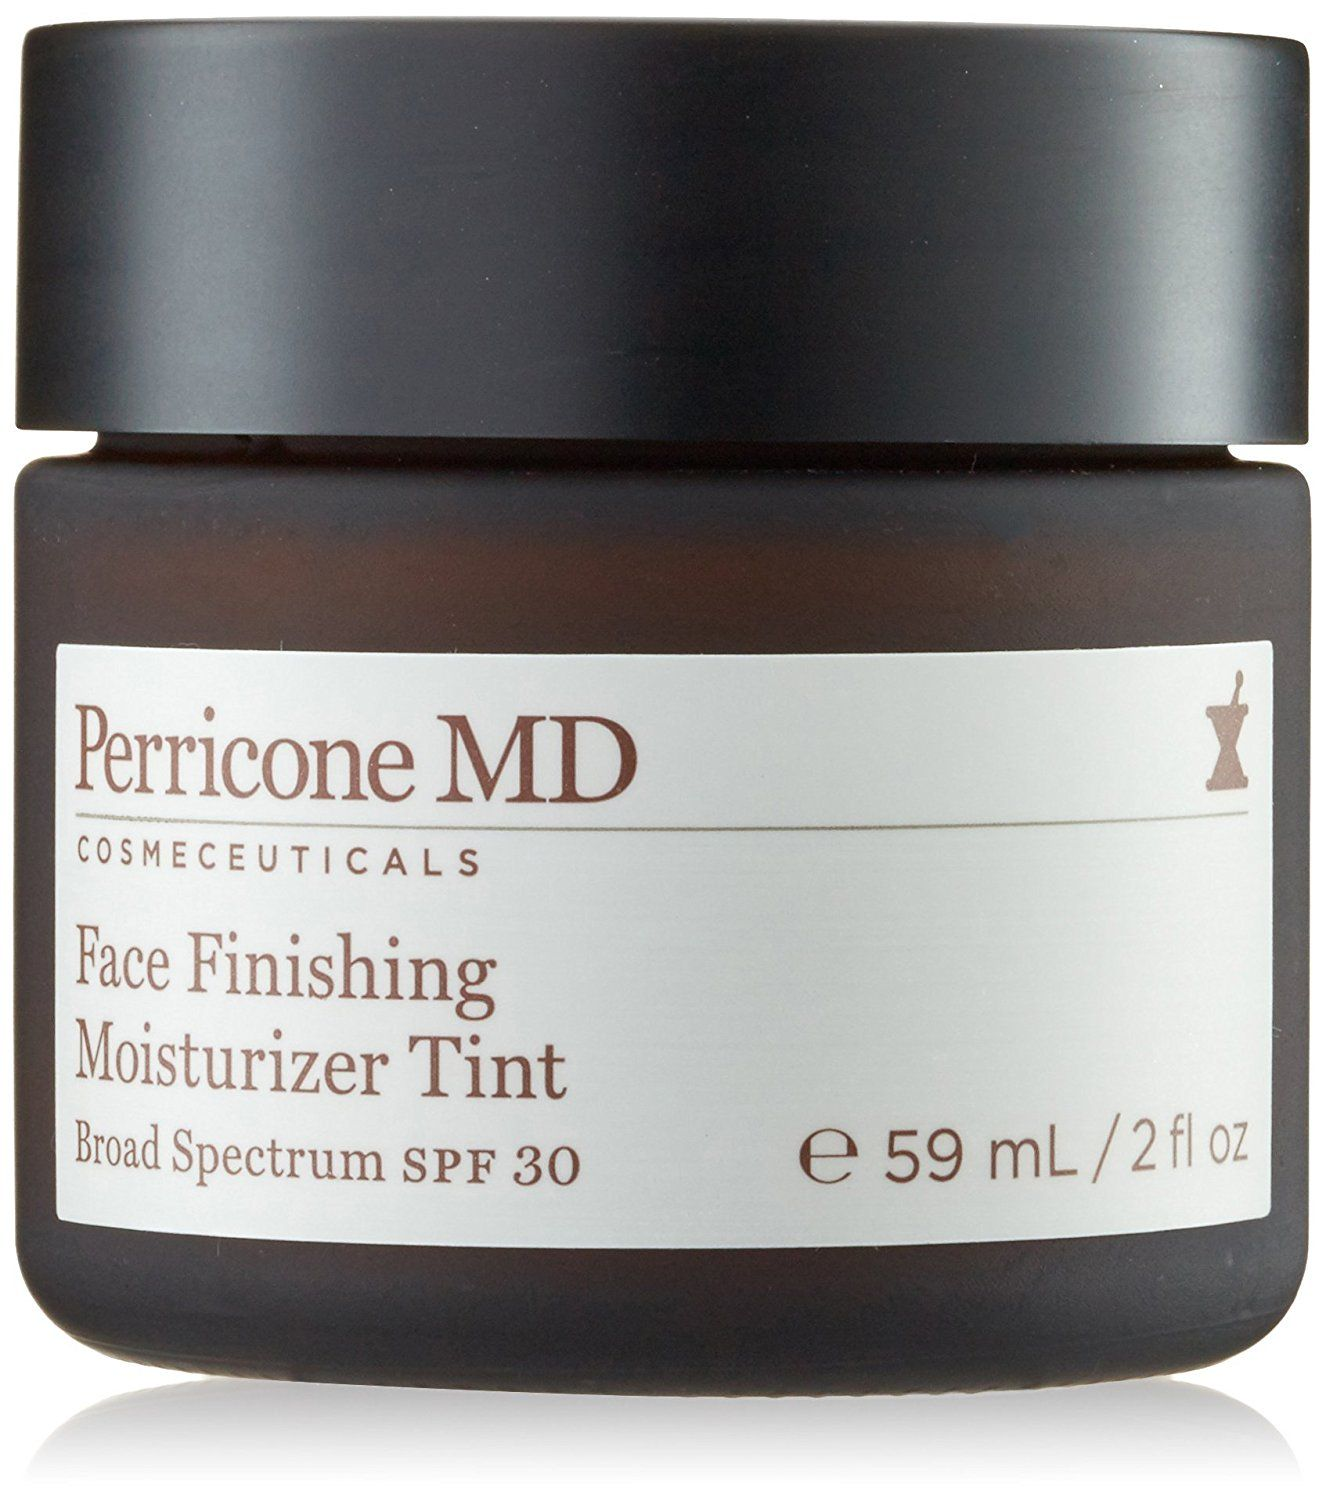 Perricone MD Face Finishing Moisturizer, 2 fl. oz. Hyaluronic Acid Serum